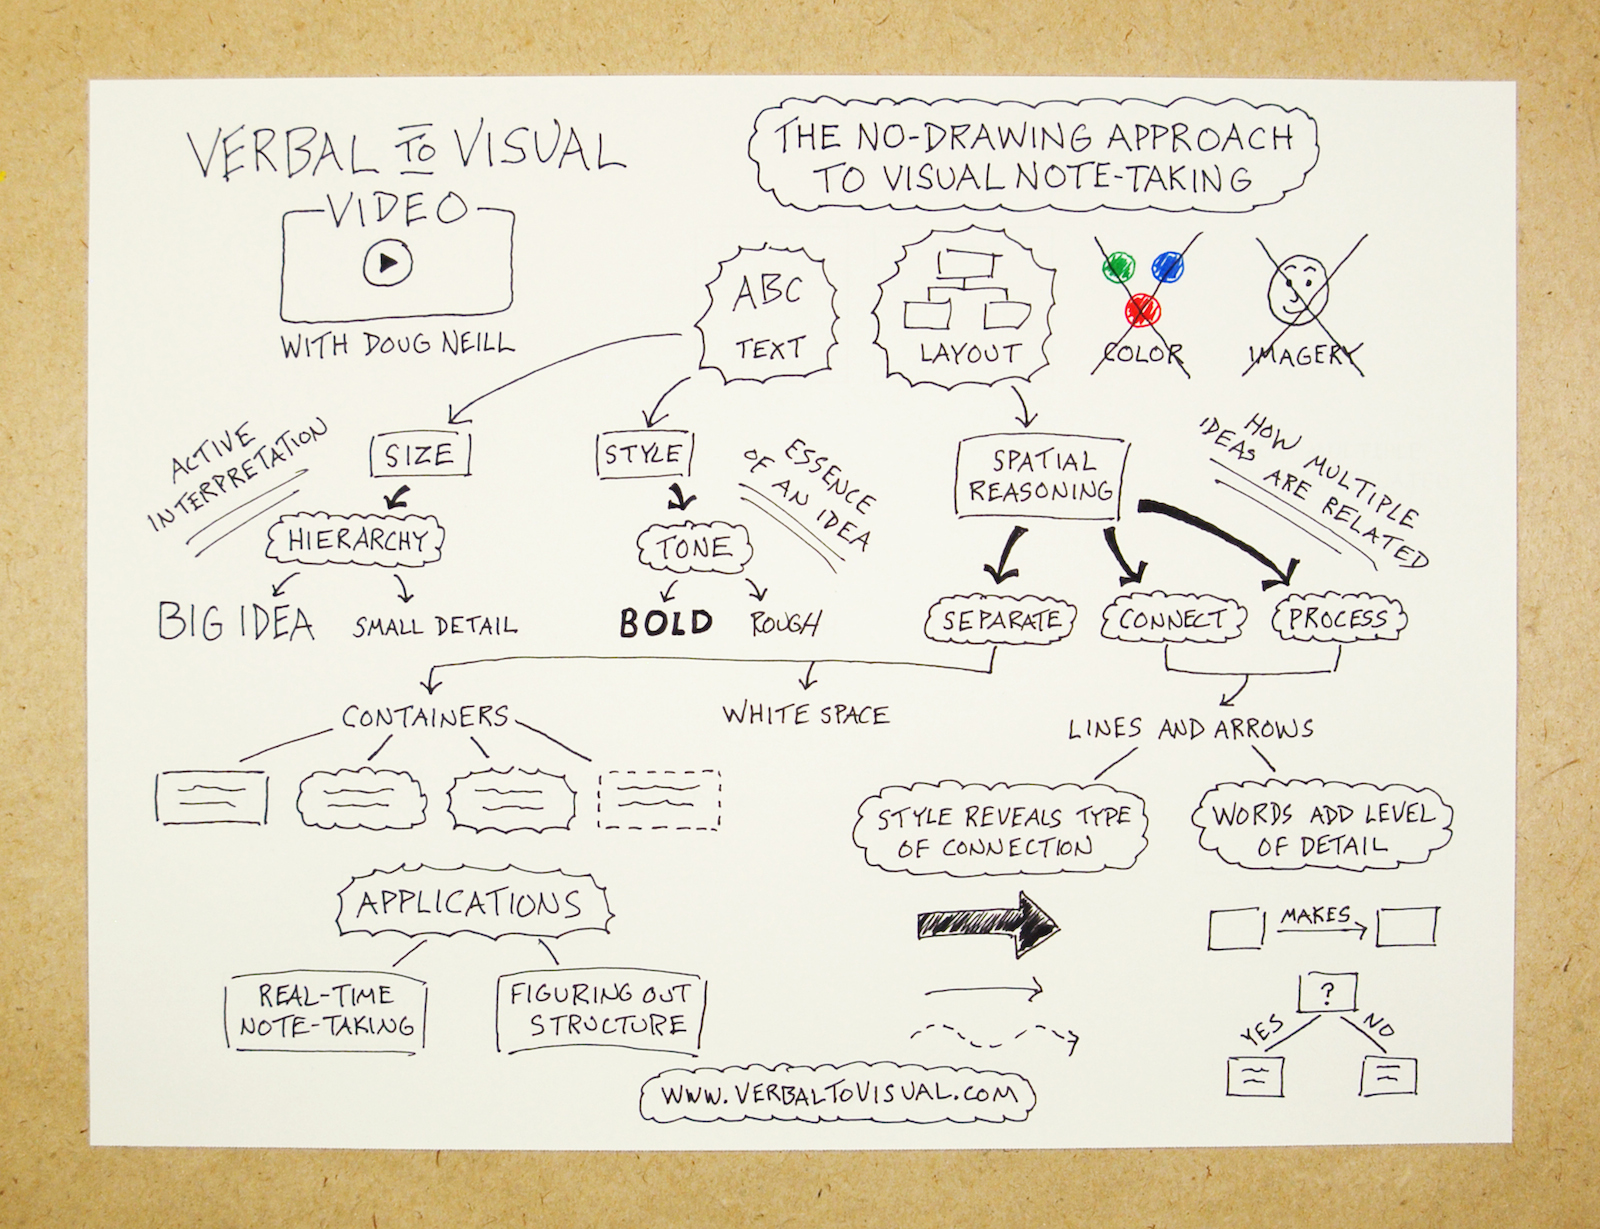 How To Sketchnote Without Drawing (VTV Episode #8) - Verbal To Visual Video - Doug Neill - visual note-taking, doodling, text, layout, containers, arrows, lines, style, tone, words